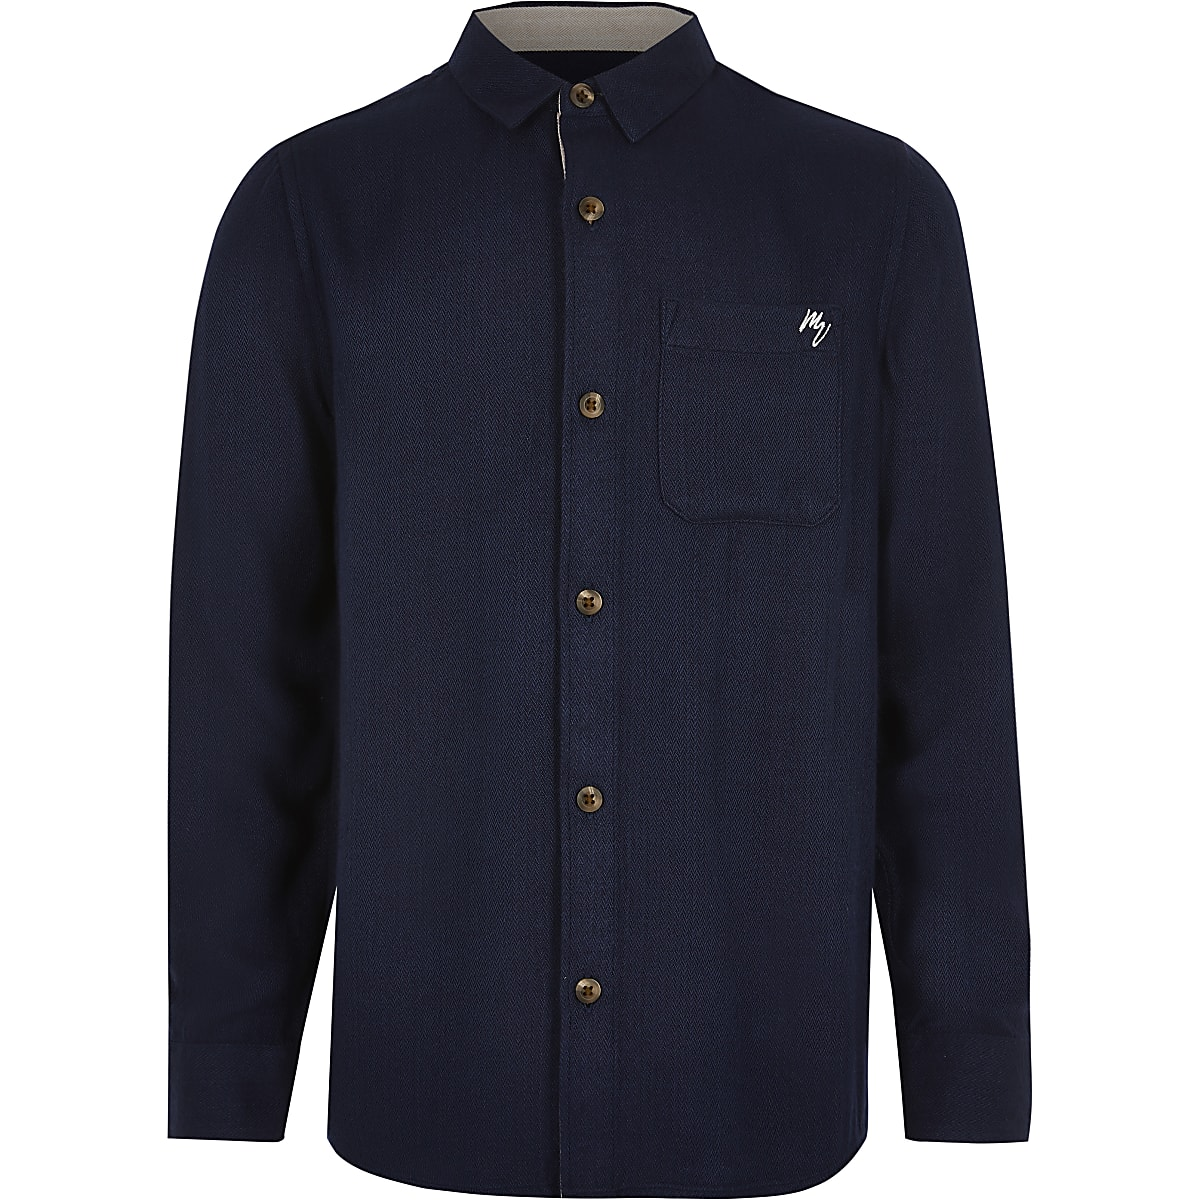 Boys navy textured chest pocket shirt